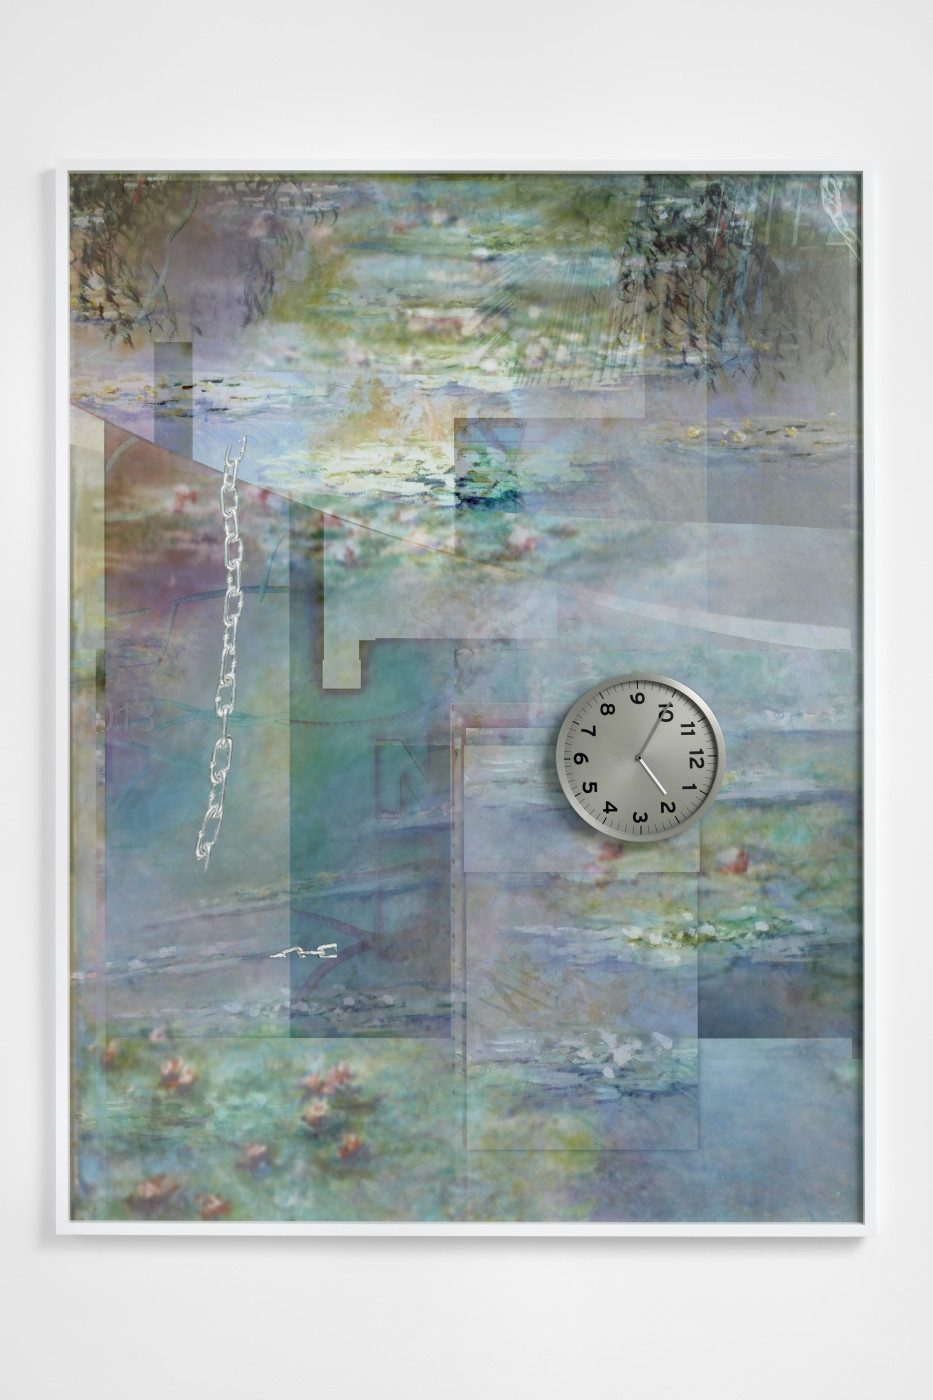 "<div class=""title""><em>Nymphaea careulea</em>, 2018</div><div class=""medium"">archival pigment print, clocks</div><div class=""dimensions"">205 x 156 x 5.7 cm / 80 ¾ x 61 ⅜ x 2 ¼ in</div>"